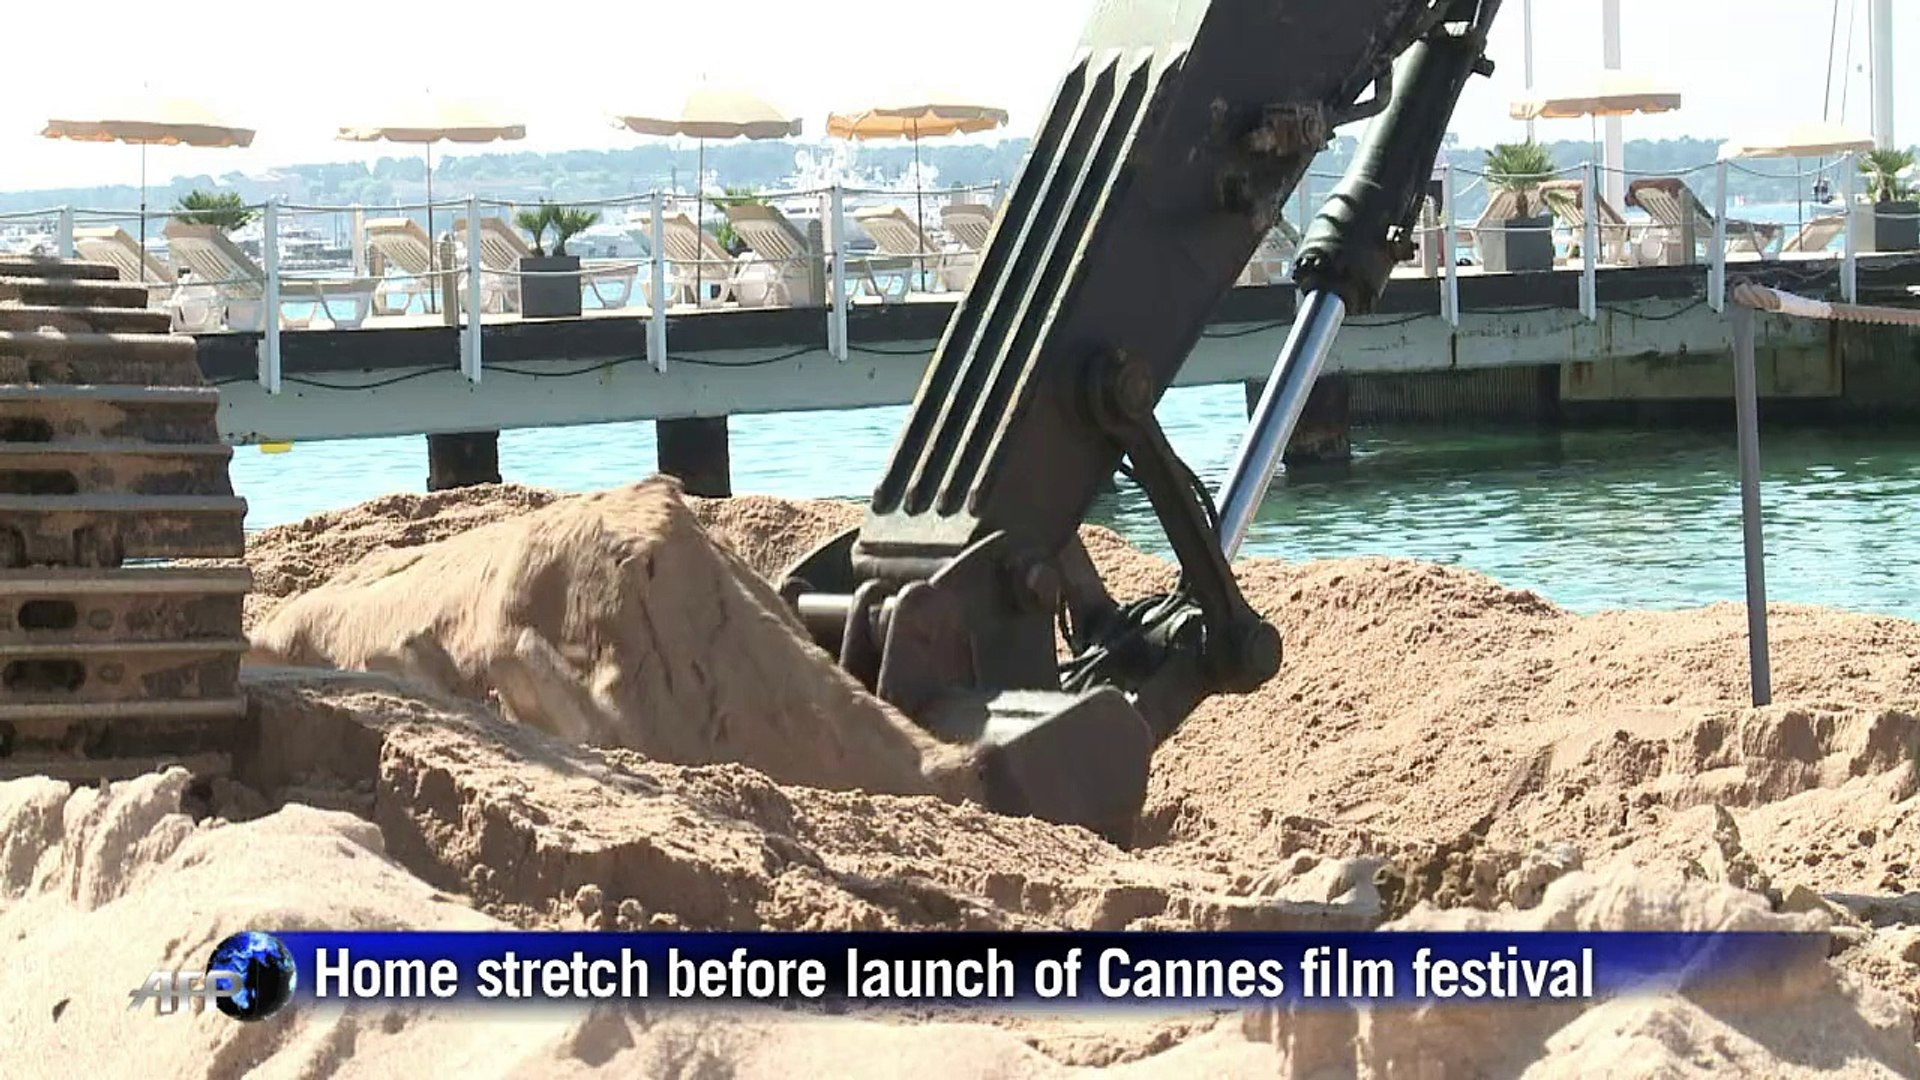 Home stretch before launch of Cannes film festival